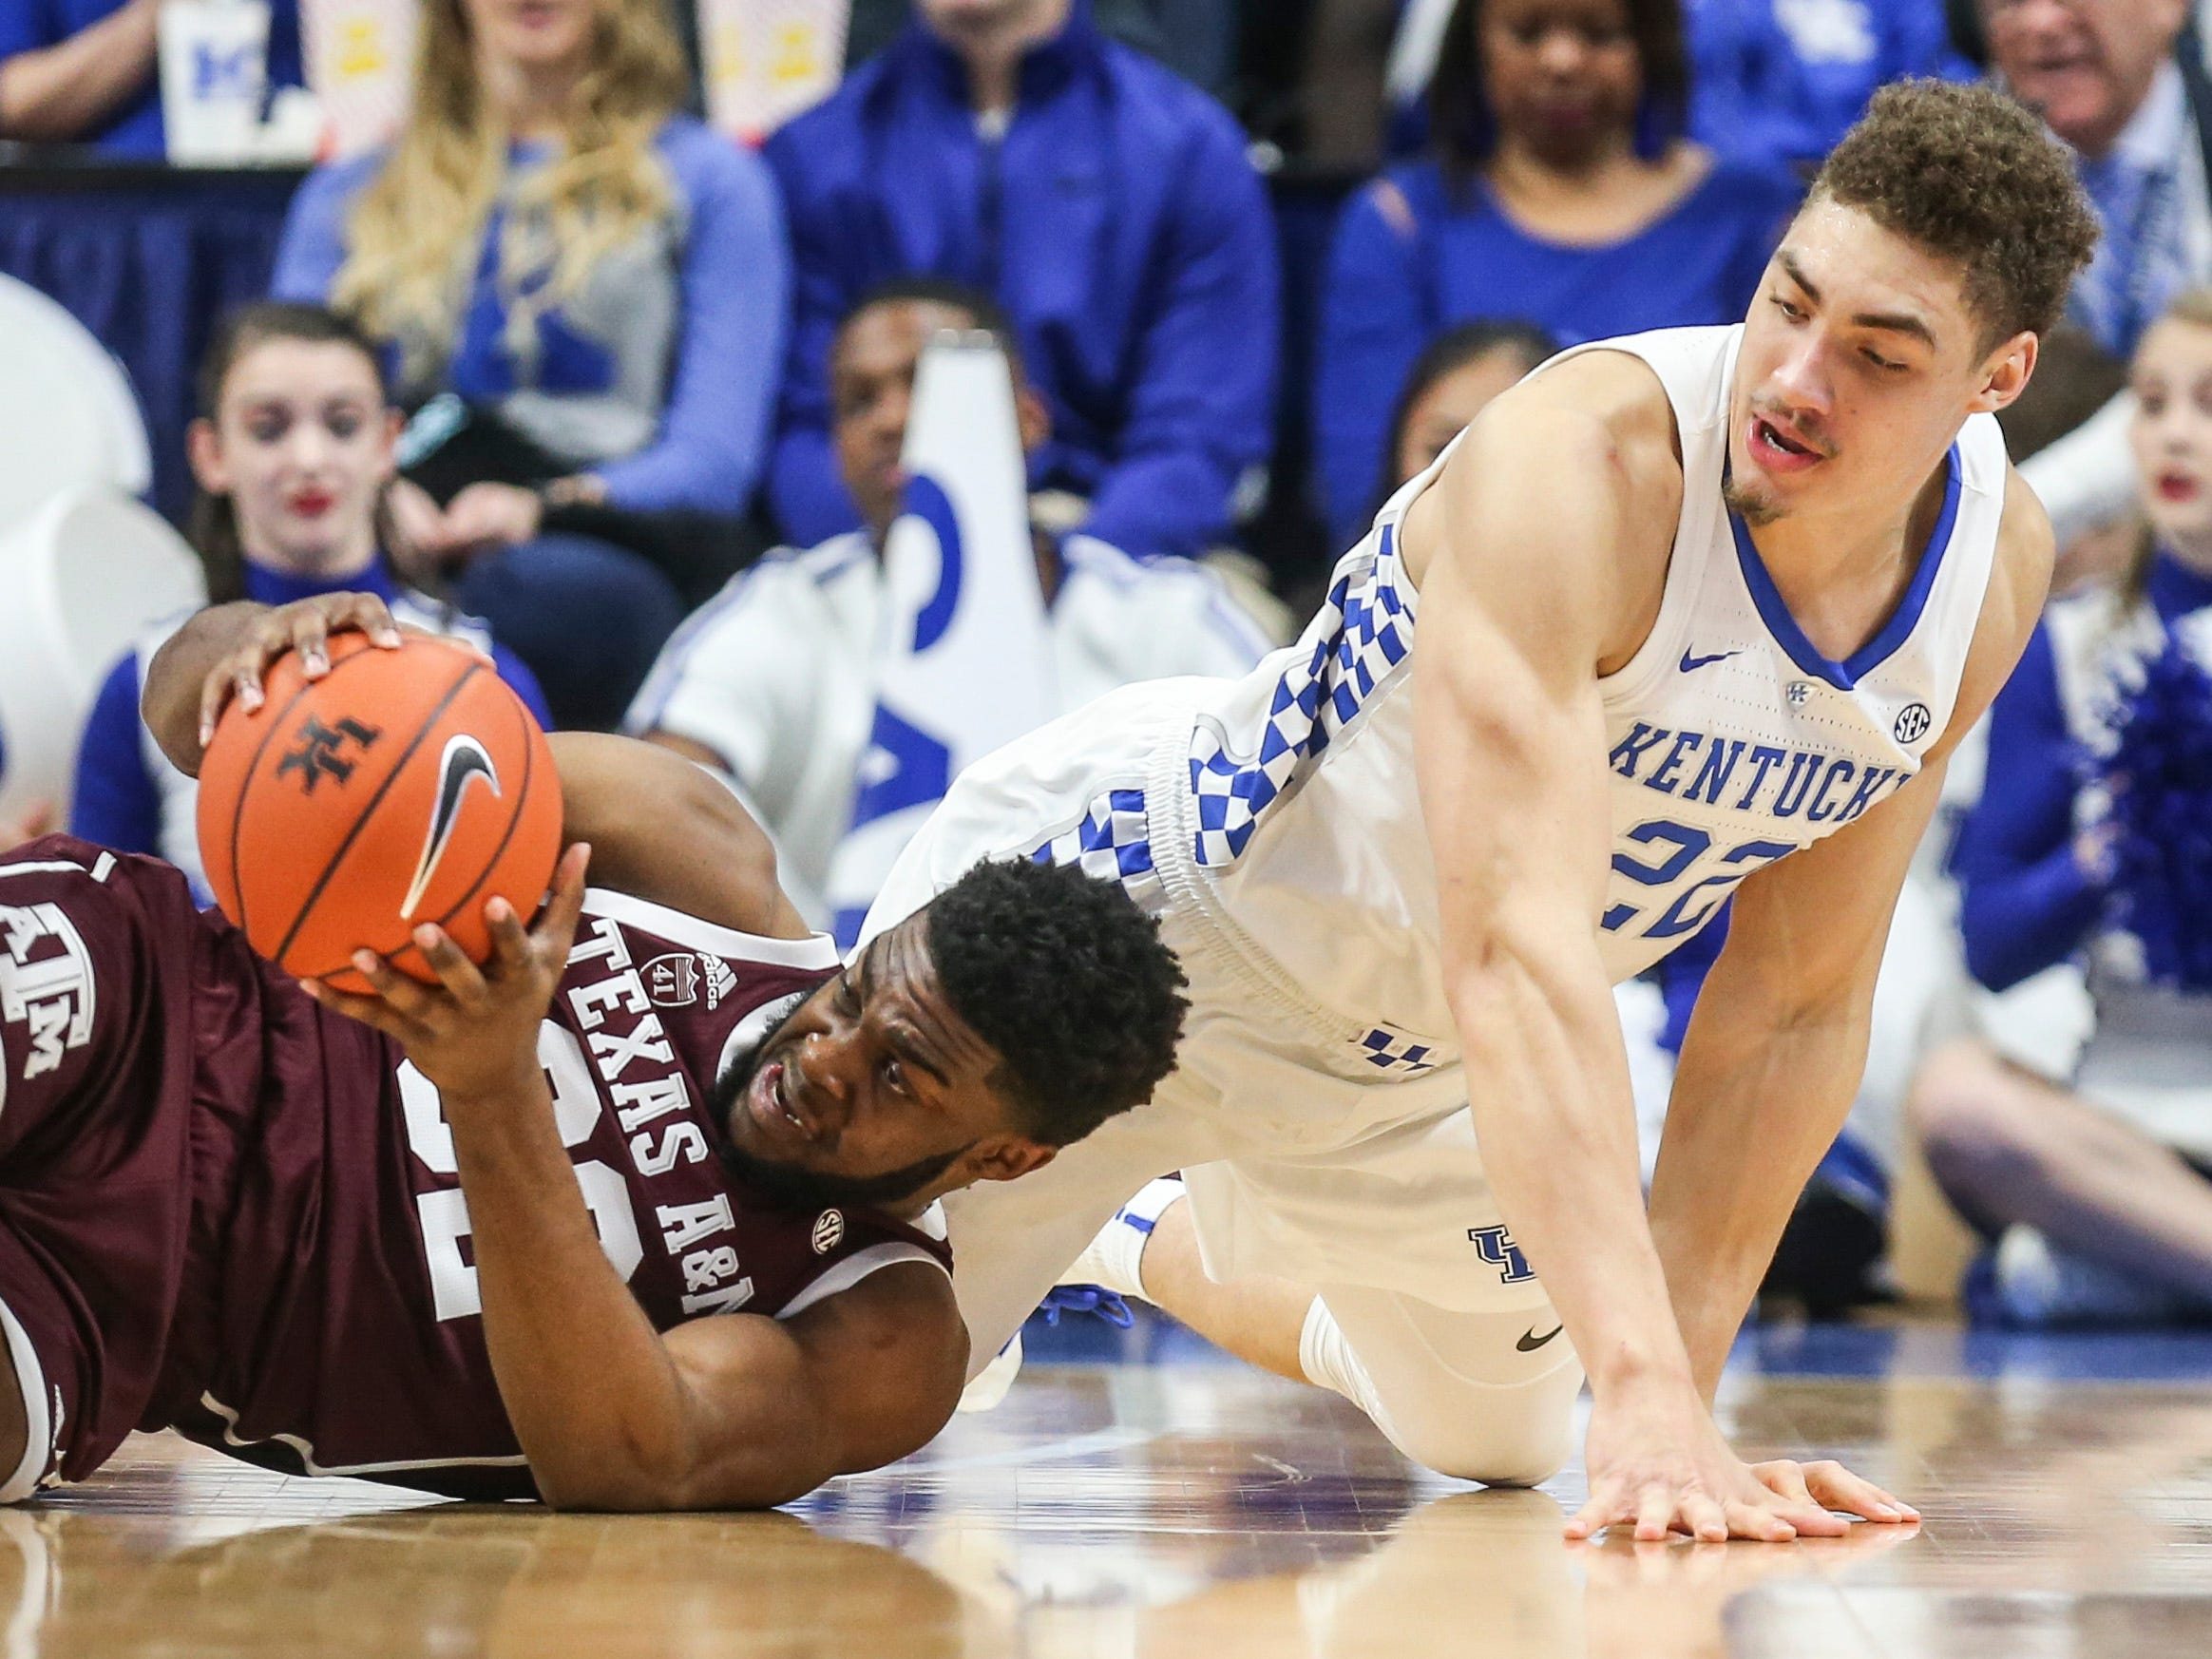 Kentucky's Reid Travis scrambled with Texas A&M's Josh Nebo Tuesday night at Rupp Arena in Lexington.